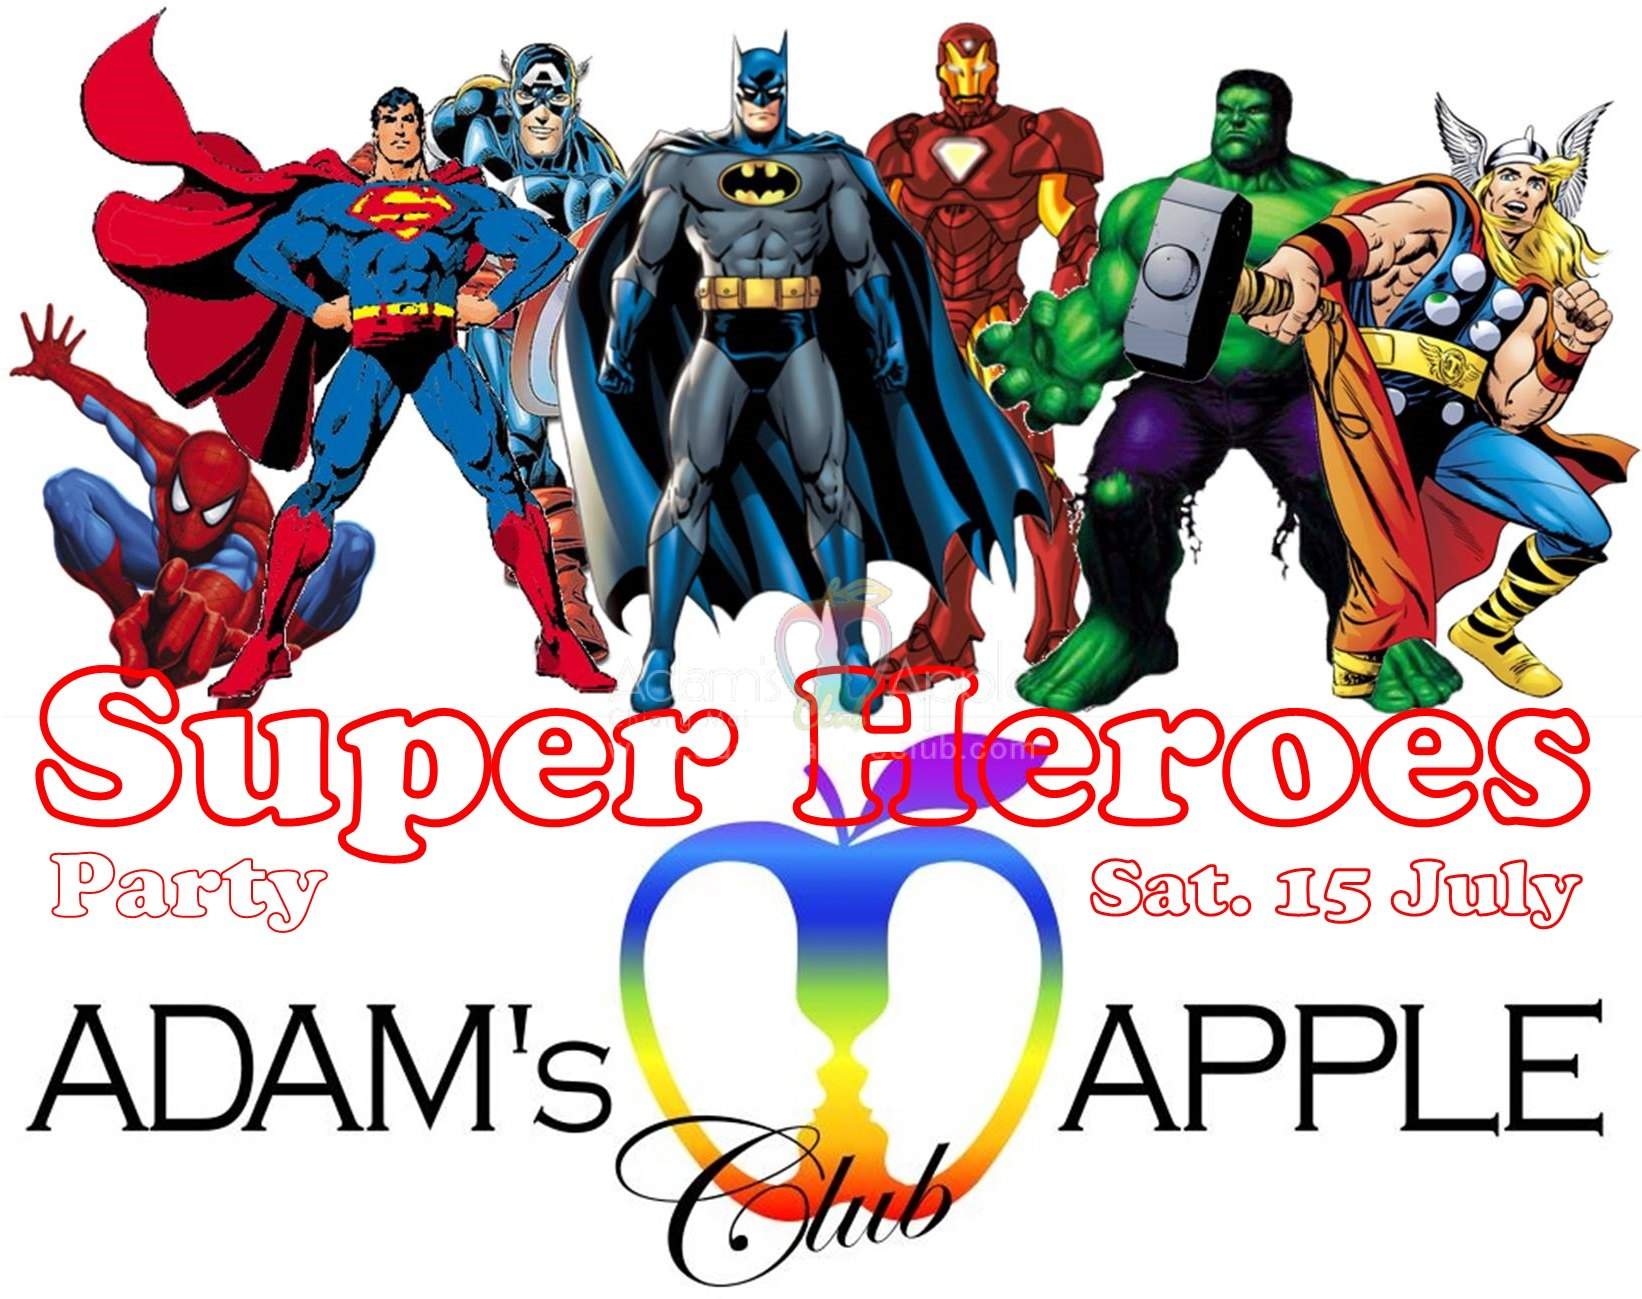 Super Heroes Party Adams Apple Club